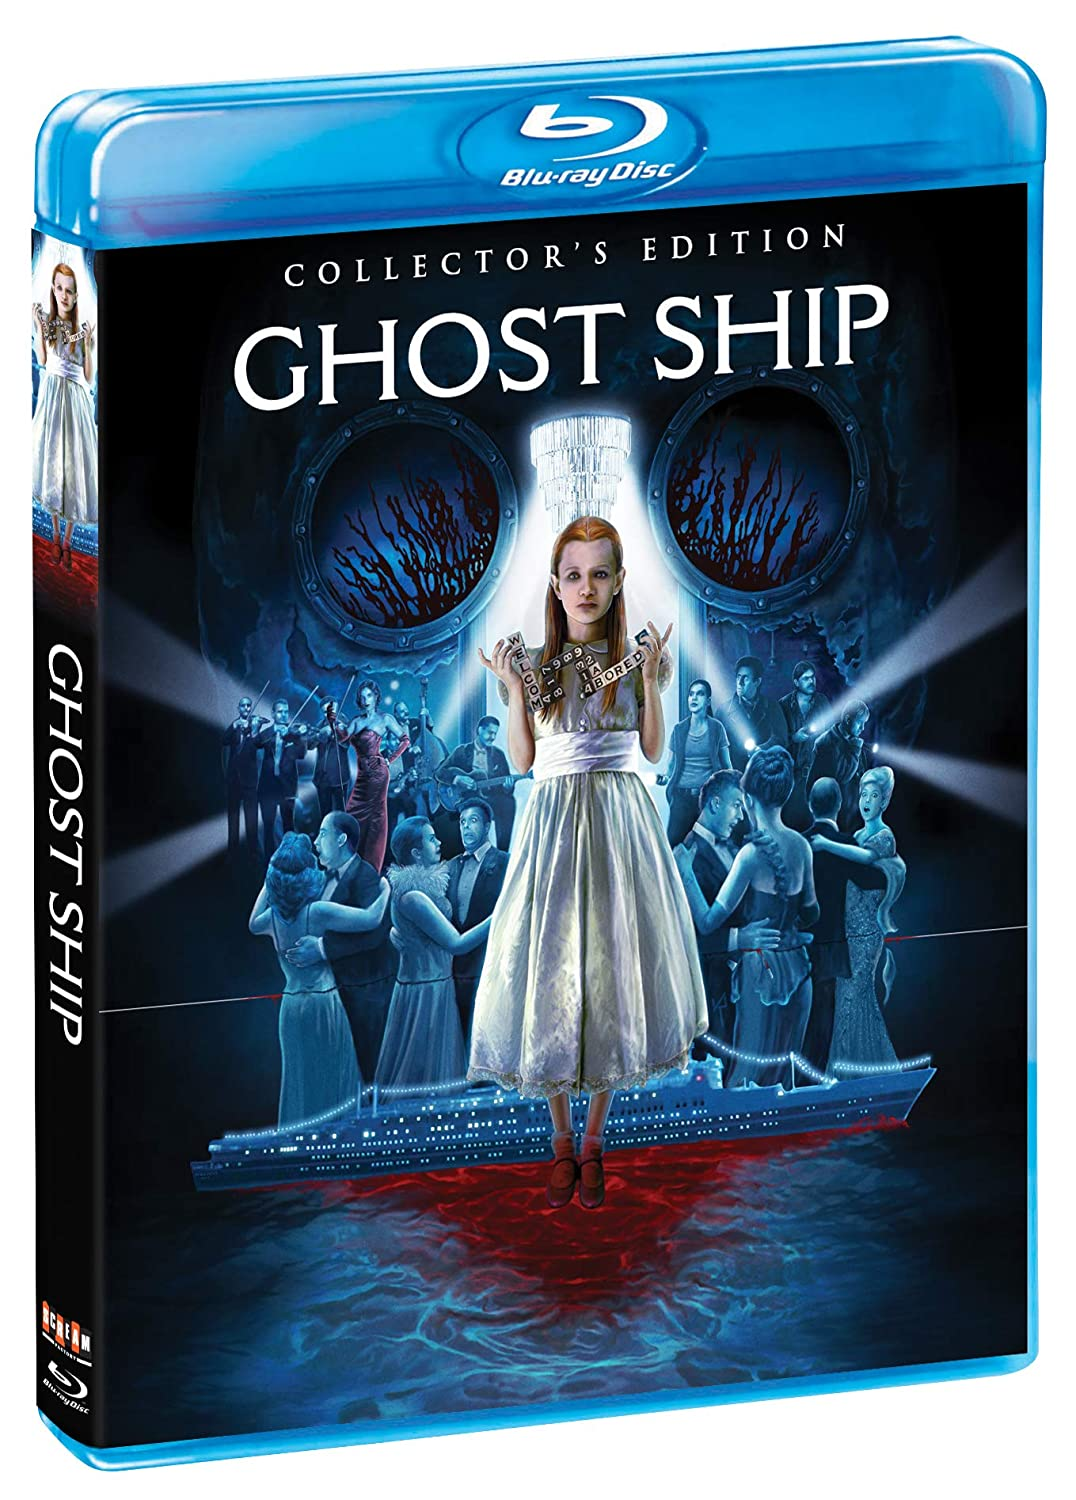 GHOST SHIP NOW AVAILABLE FROM SHOUT! FACTORY